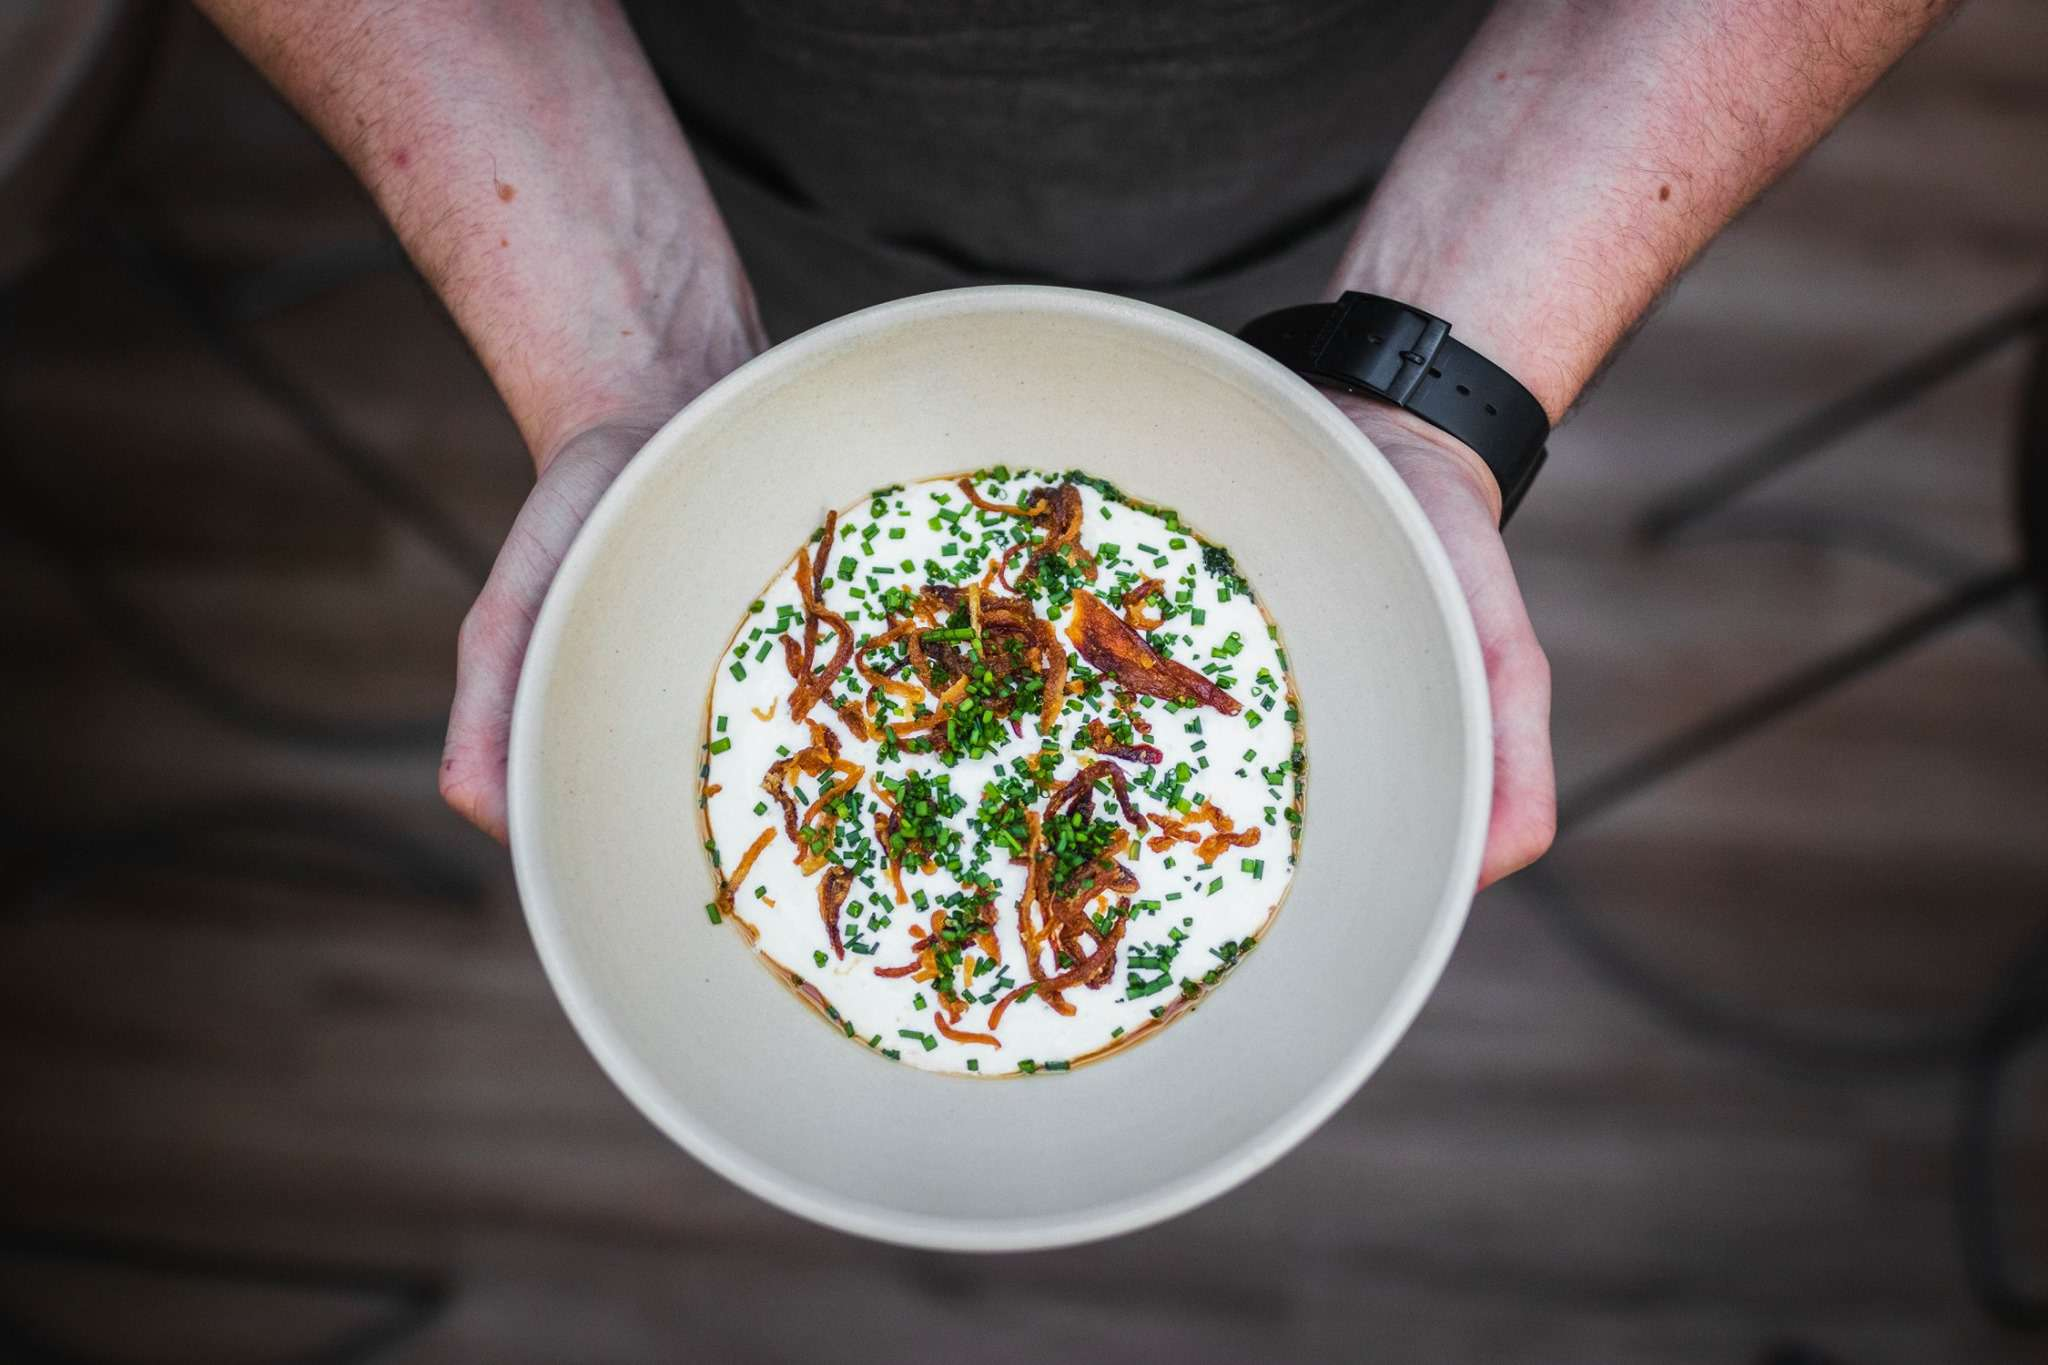 two hands holding a bowl of a white soup farbish with green herbs and crispy onions